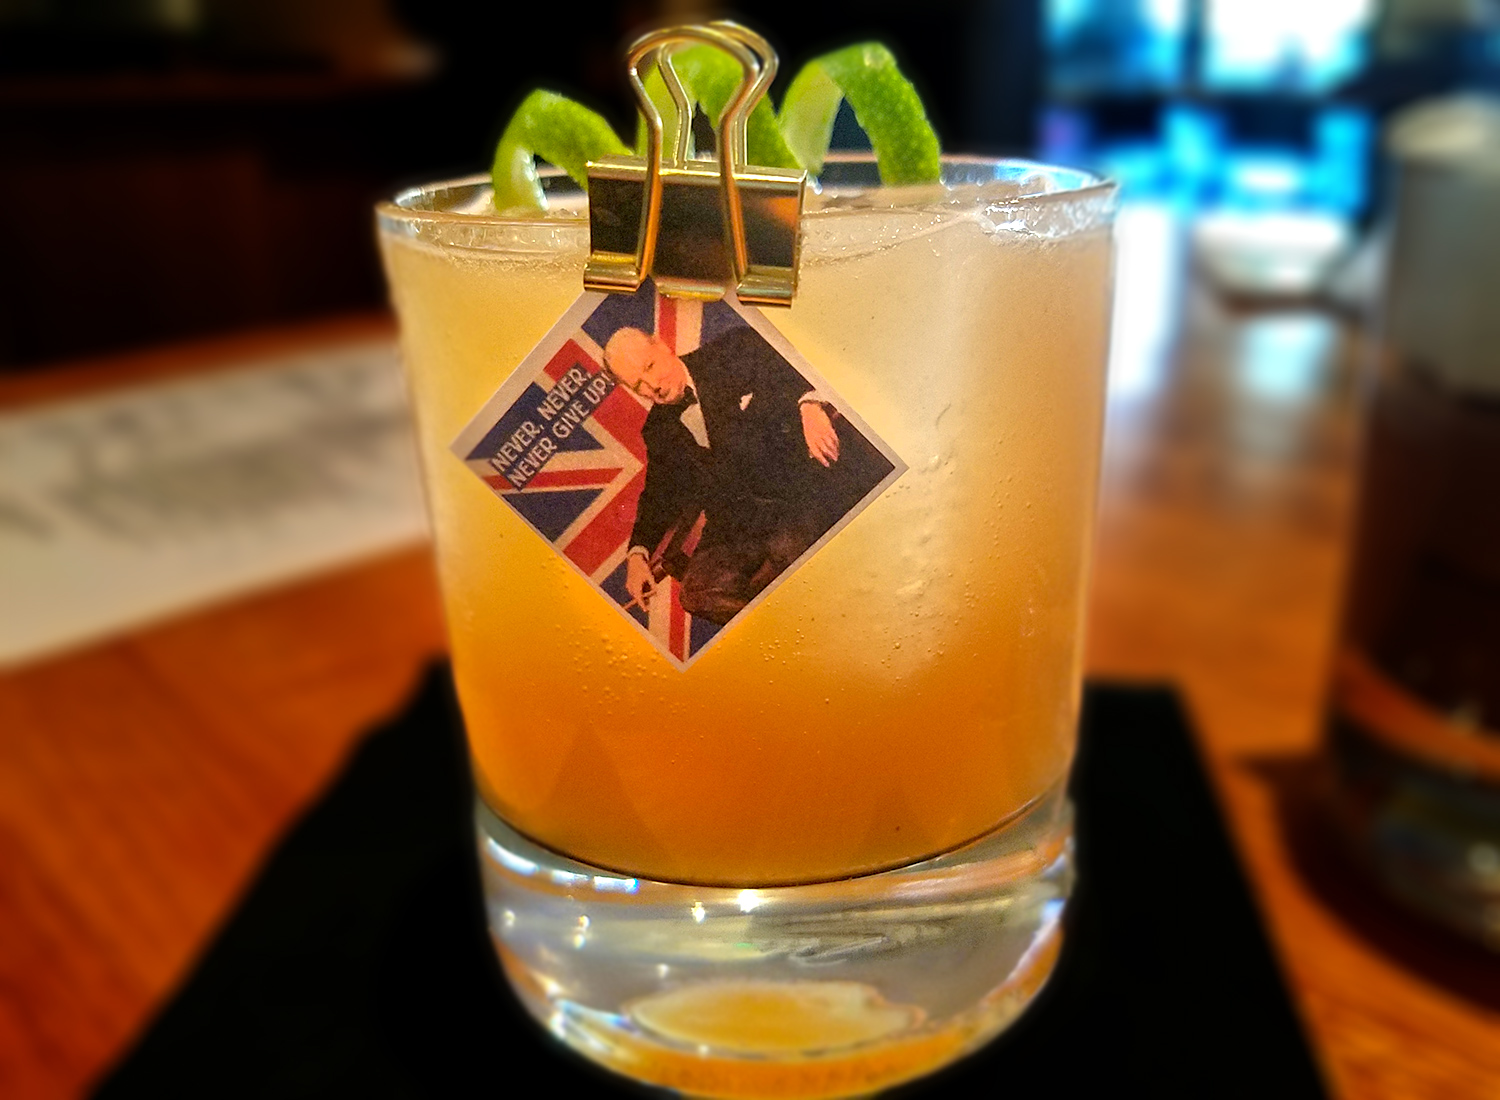 The Churchill cocktail made with tequila and mezcal is a smoky ode to the British Bulldog at Perch + Plow in Santa Rosa.